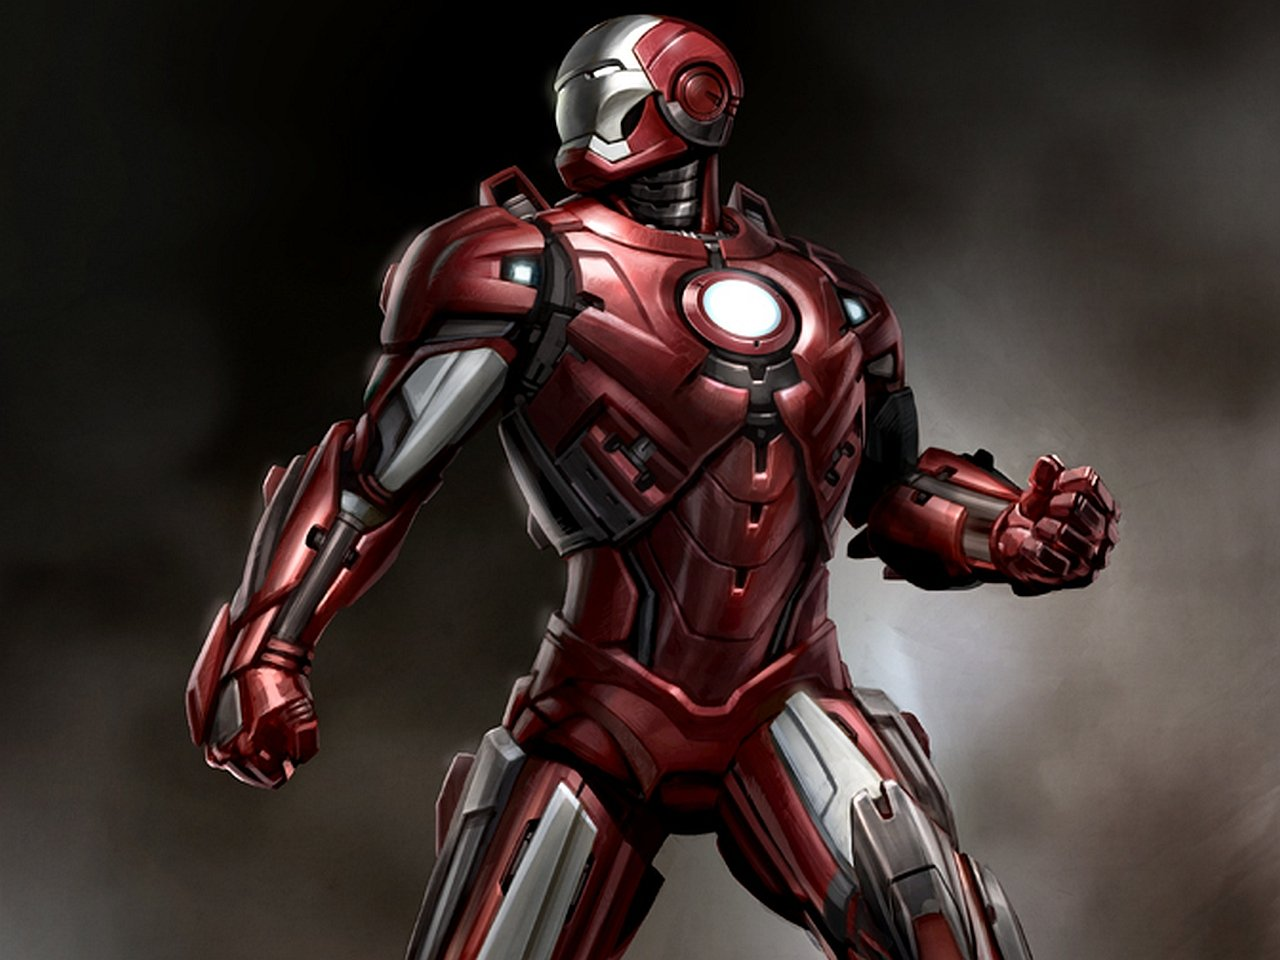 Iron Man Computer Wallpapers Desktop Backgrounds 1280x960 ID 1280x960